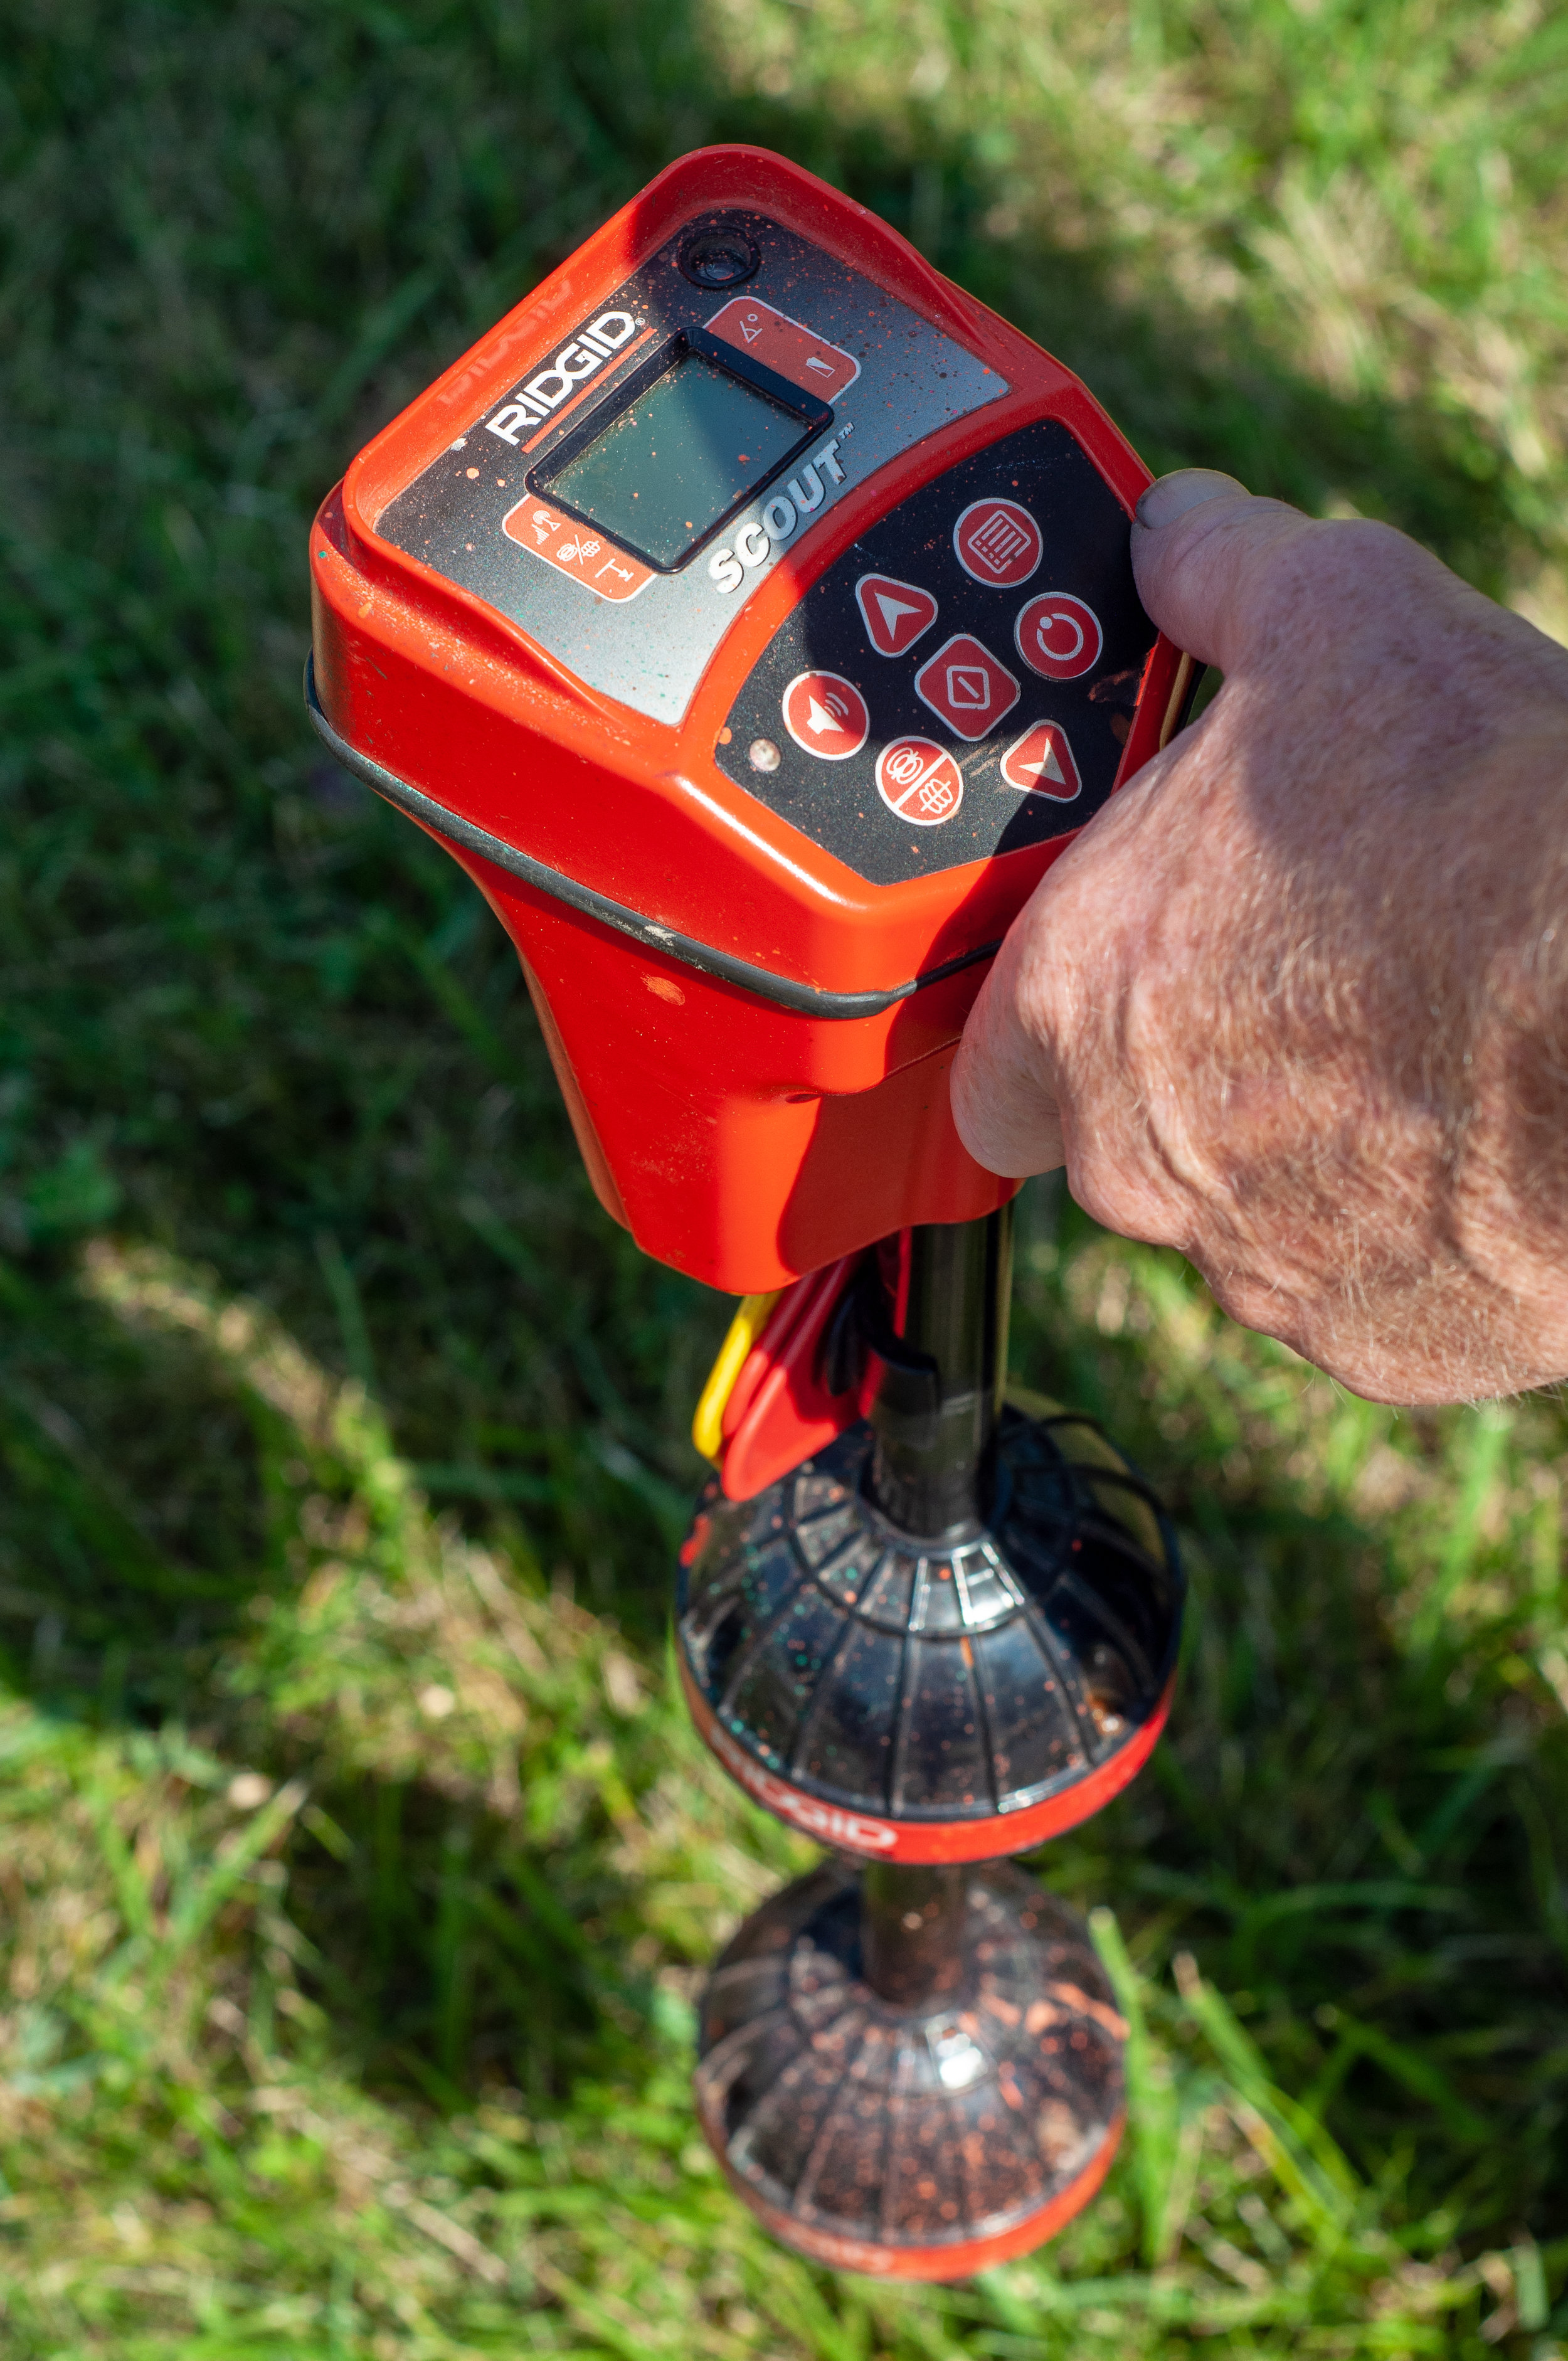 Rigid electronic sewer and drain problem locator by Rapid Flush